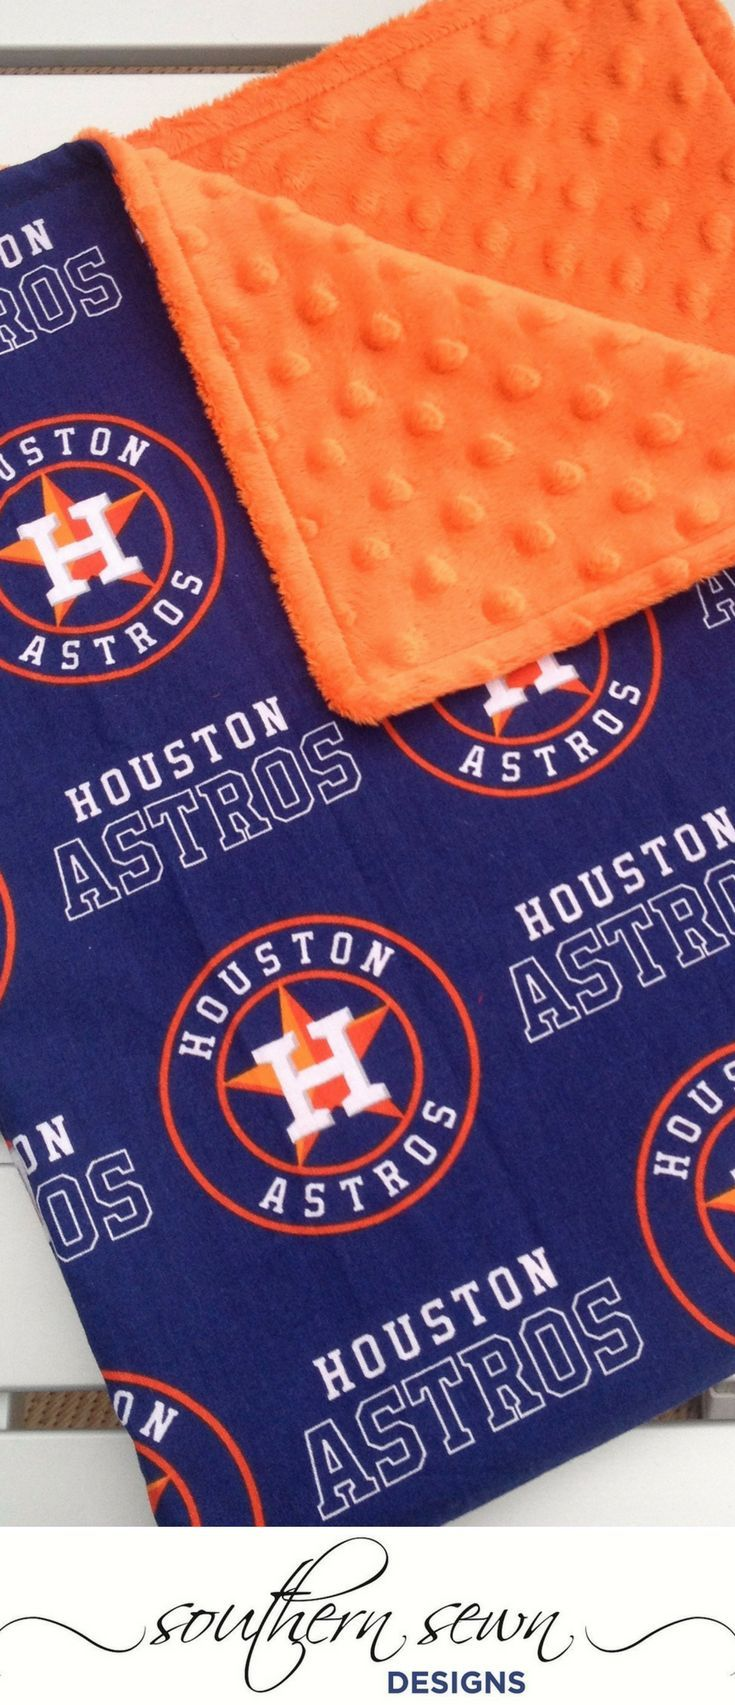 Les 150 meilleures images du tableau cute baby blankets sur pinterest world series champs the houston astros sports fans will love these personalized team blankets for their baby these amazingly soft and durable negle Choice Image